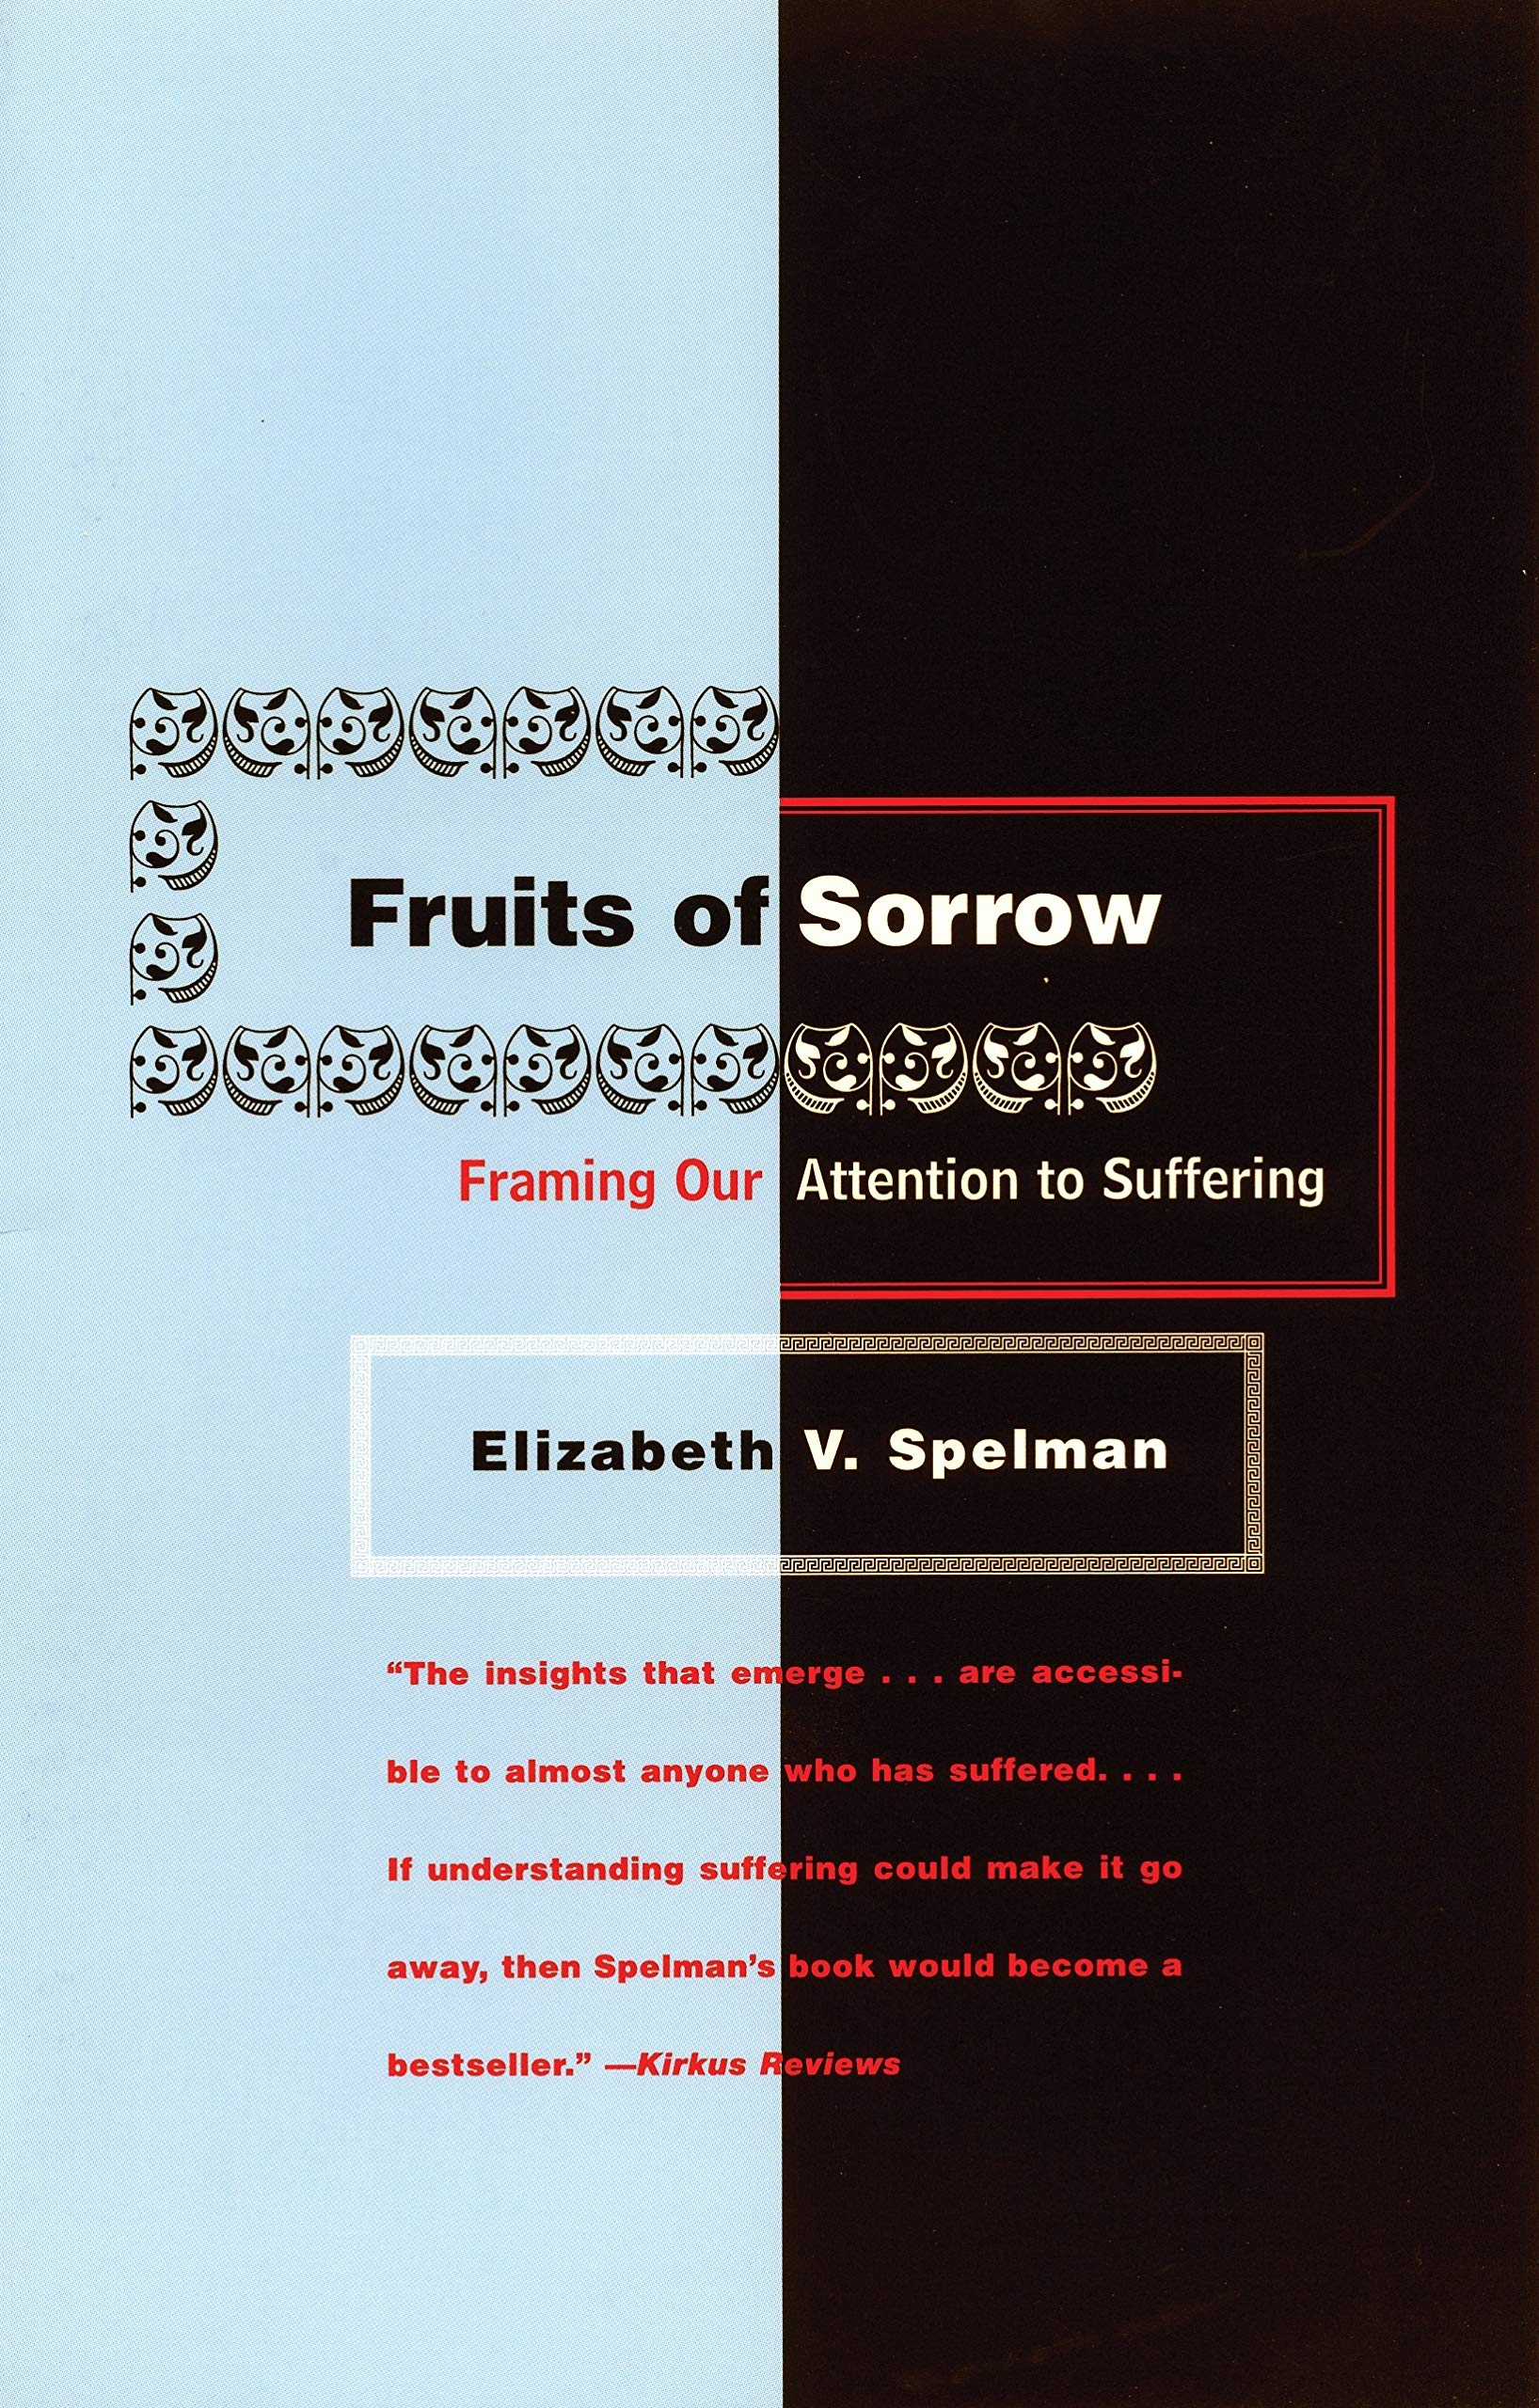 Fruits of Sorrow: Framing Our Attention to Suffering